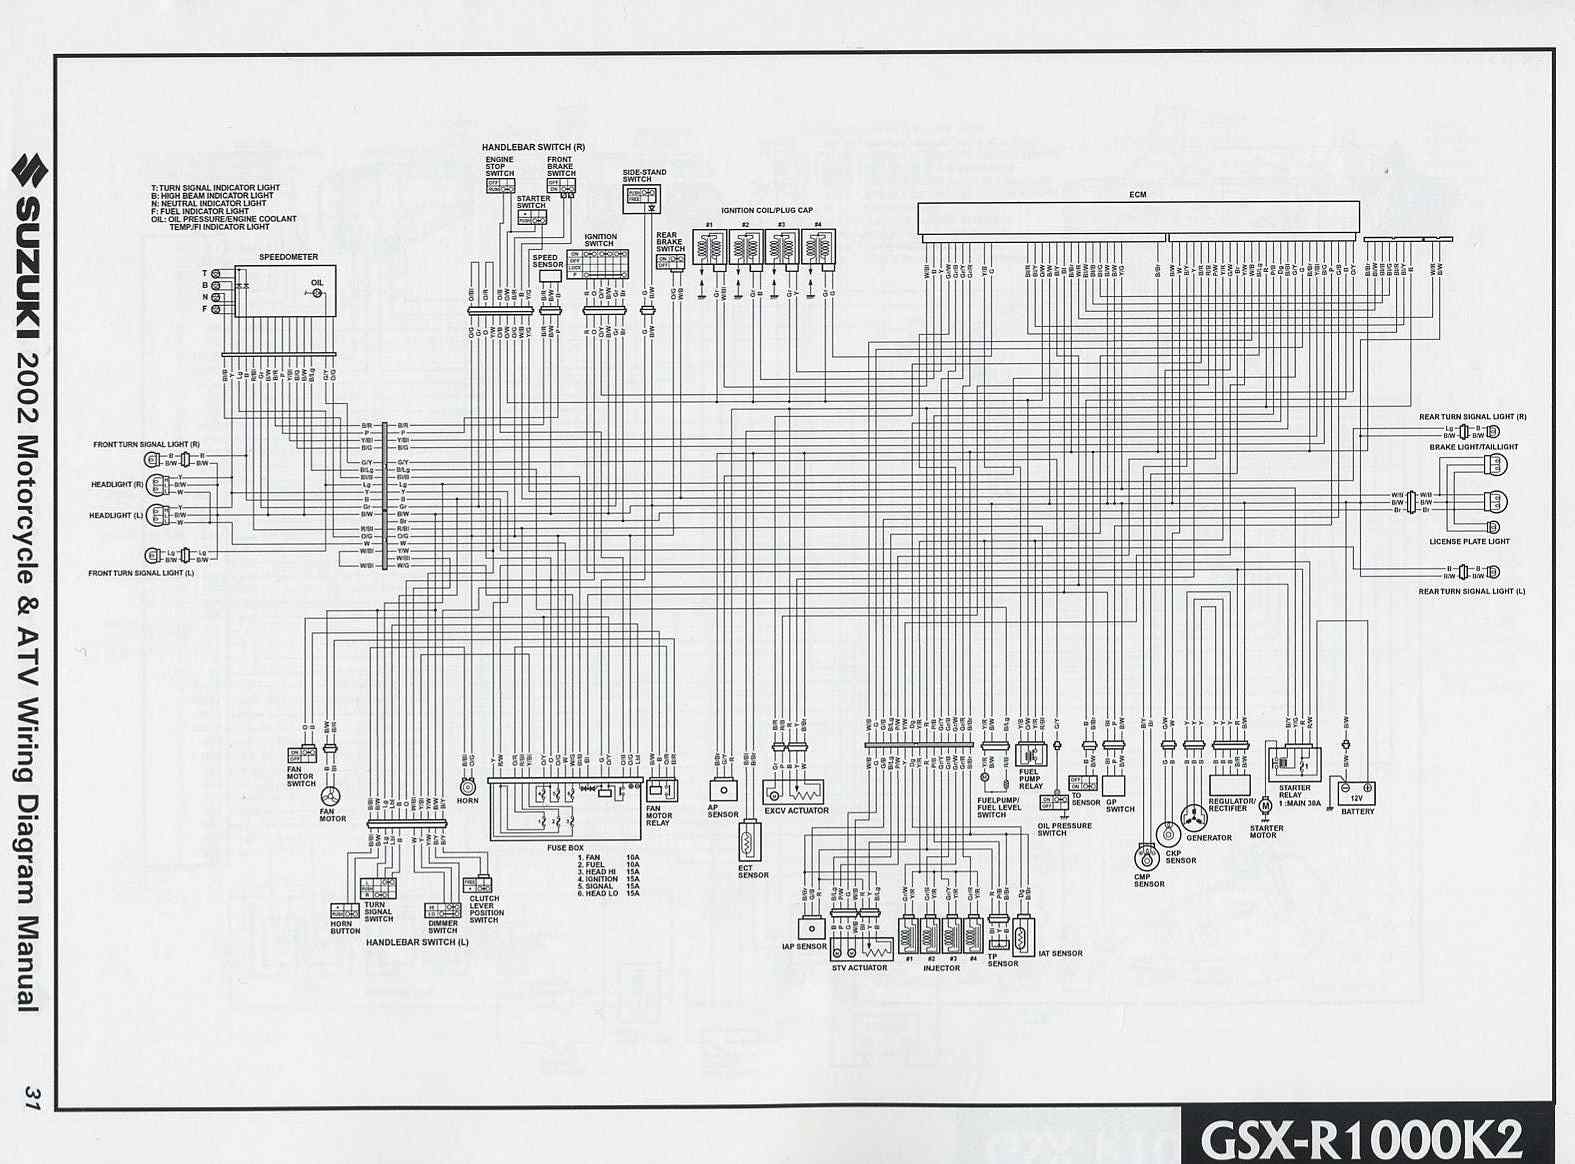 gsxr 1000 k3 wallpaper | hd wallon wiring diagram 2003 polaris classic wiring diagram 2003 gsx r1000